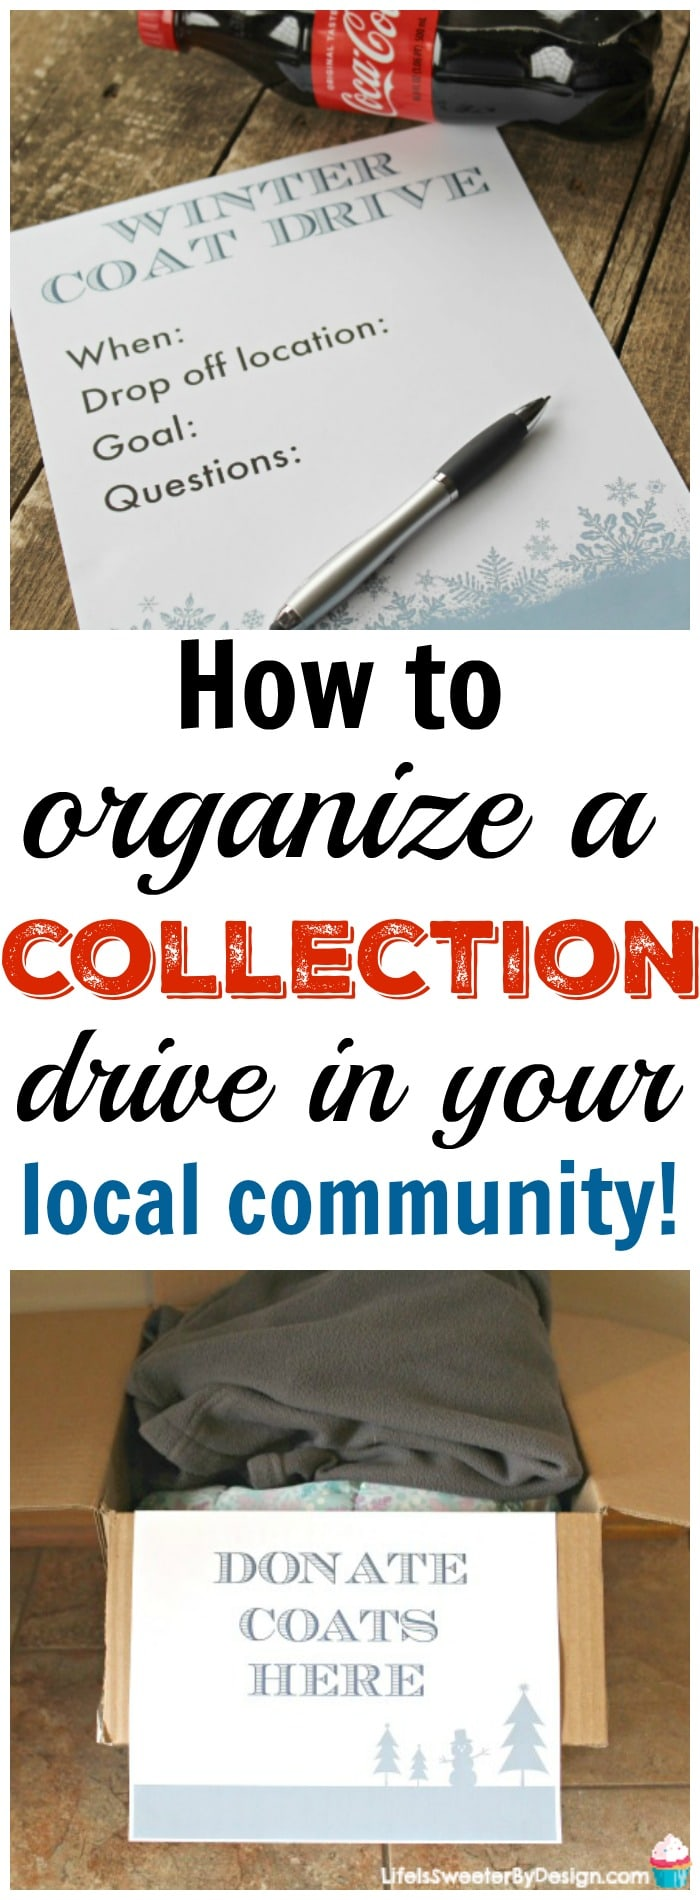 How to organize a collection drive in your local community! These tips will help you support local charities and give back to others. Organizing a donation drive is a great family event during the holidays.